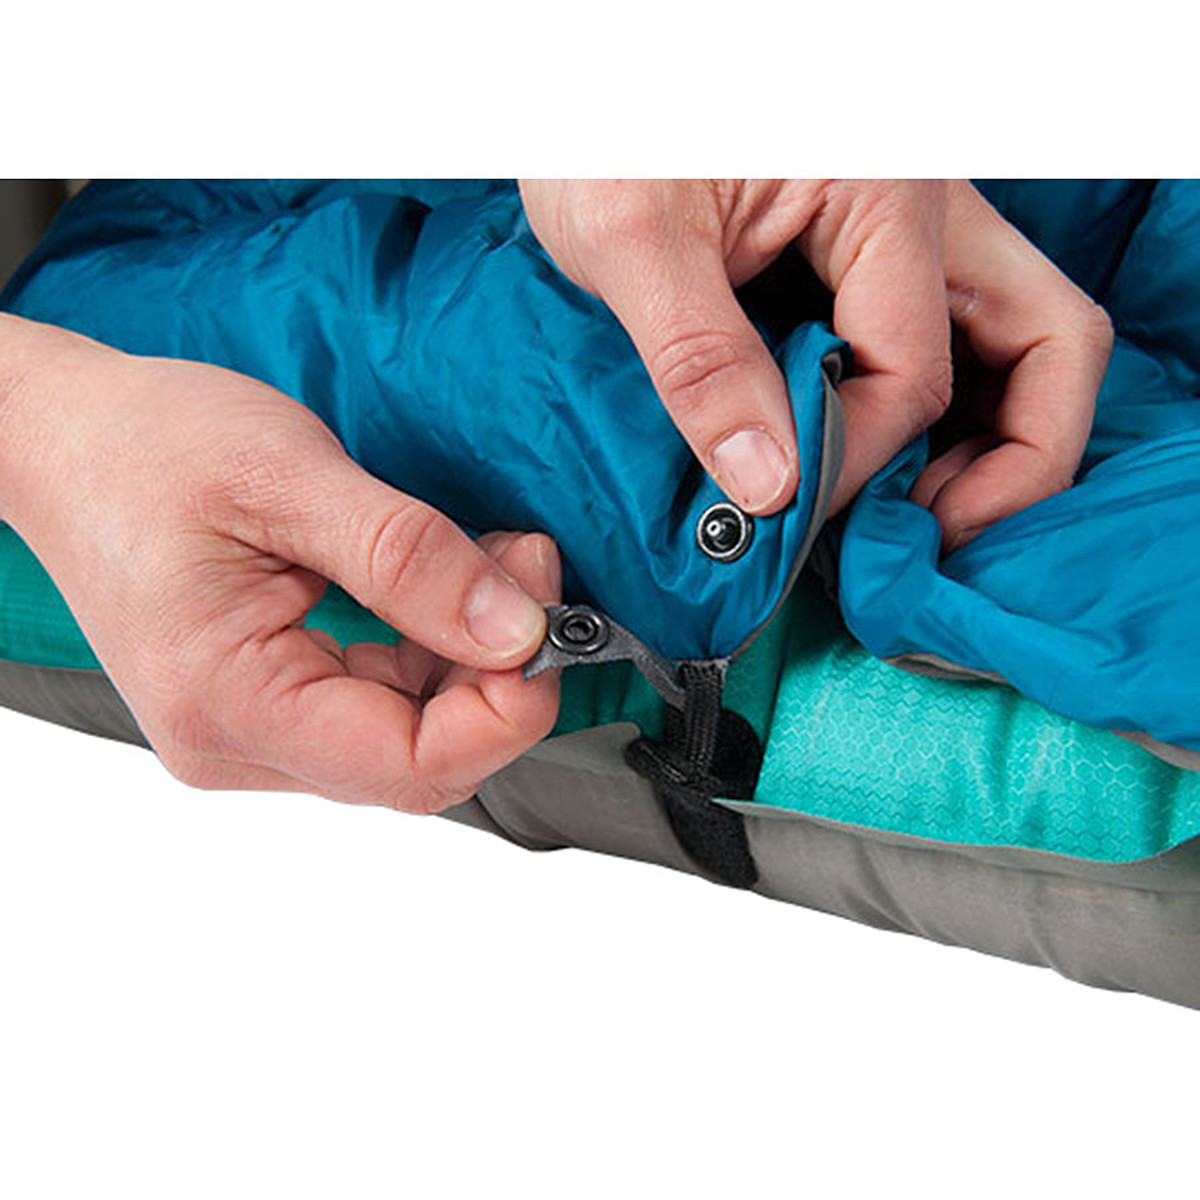 Therm-a-Rest Vela Blanket: 40 Degree Down Blanket-to-Pad Connection